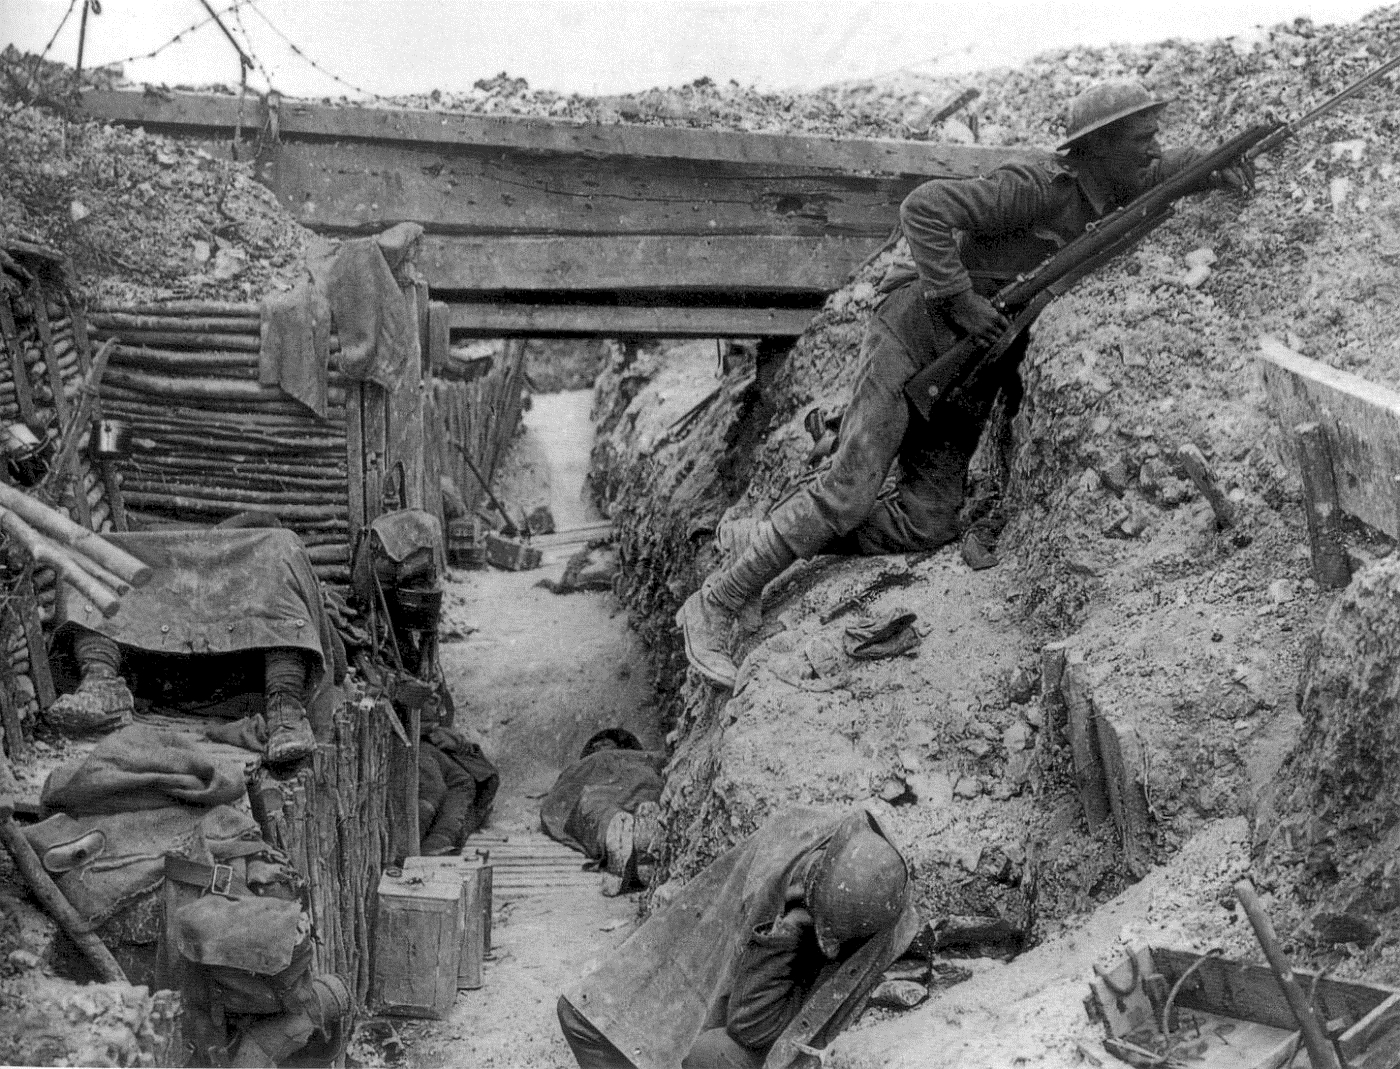 trench warfare in ww1 research paper Life in the trenches - research and evaluation of the daily routines in the trench 6 boy soldiers world war one was named the great war as it was thought to.